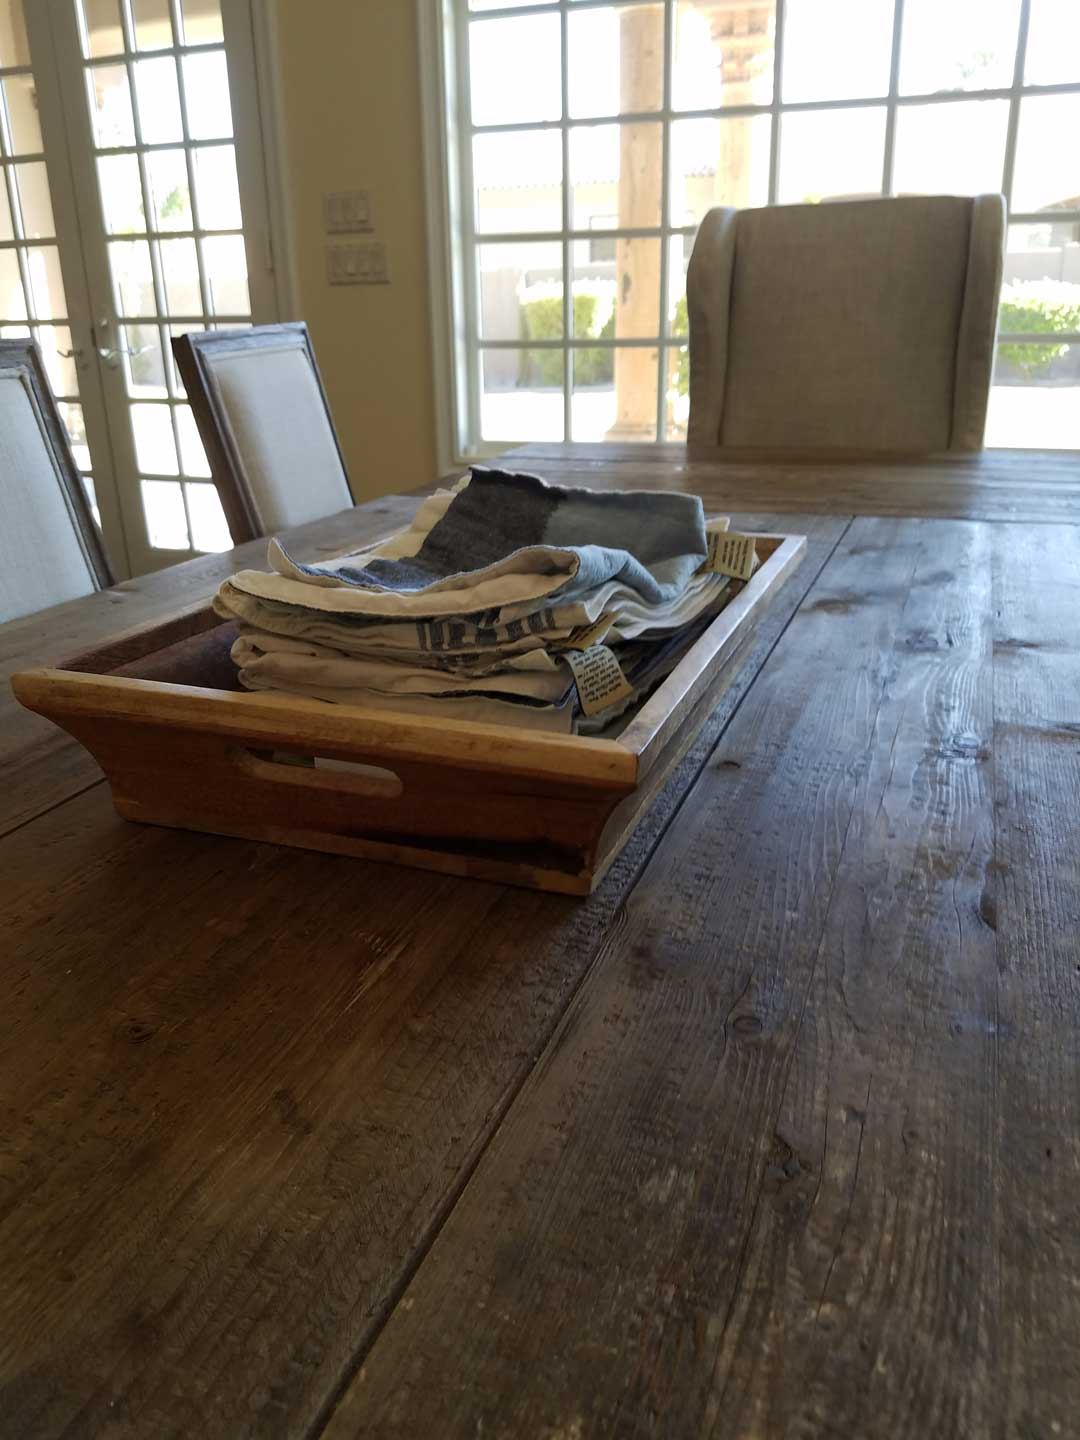 rough-hewn-tabel-top-rustic-and-old-italian-with-cloth-napkin-trough